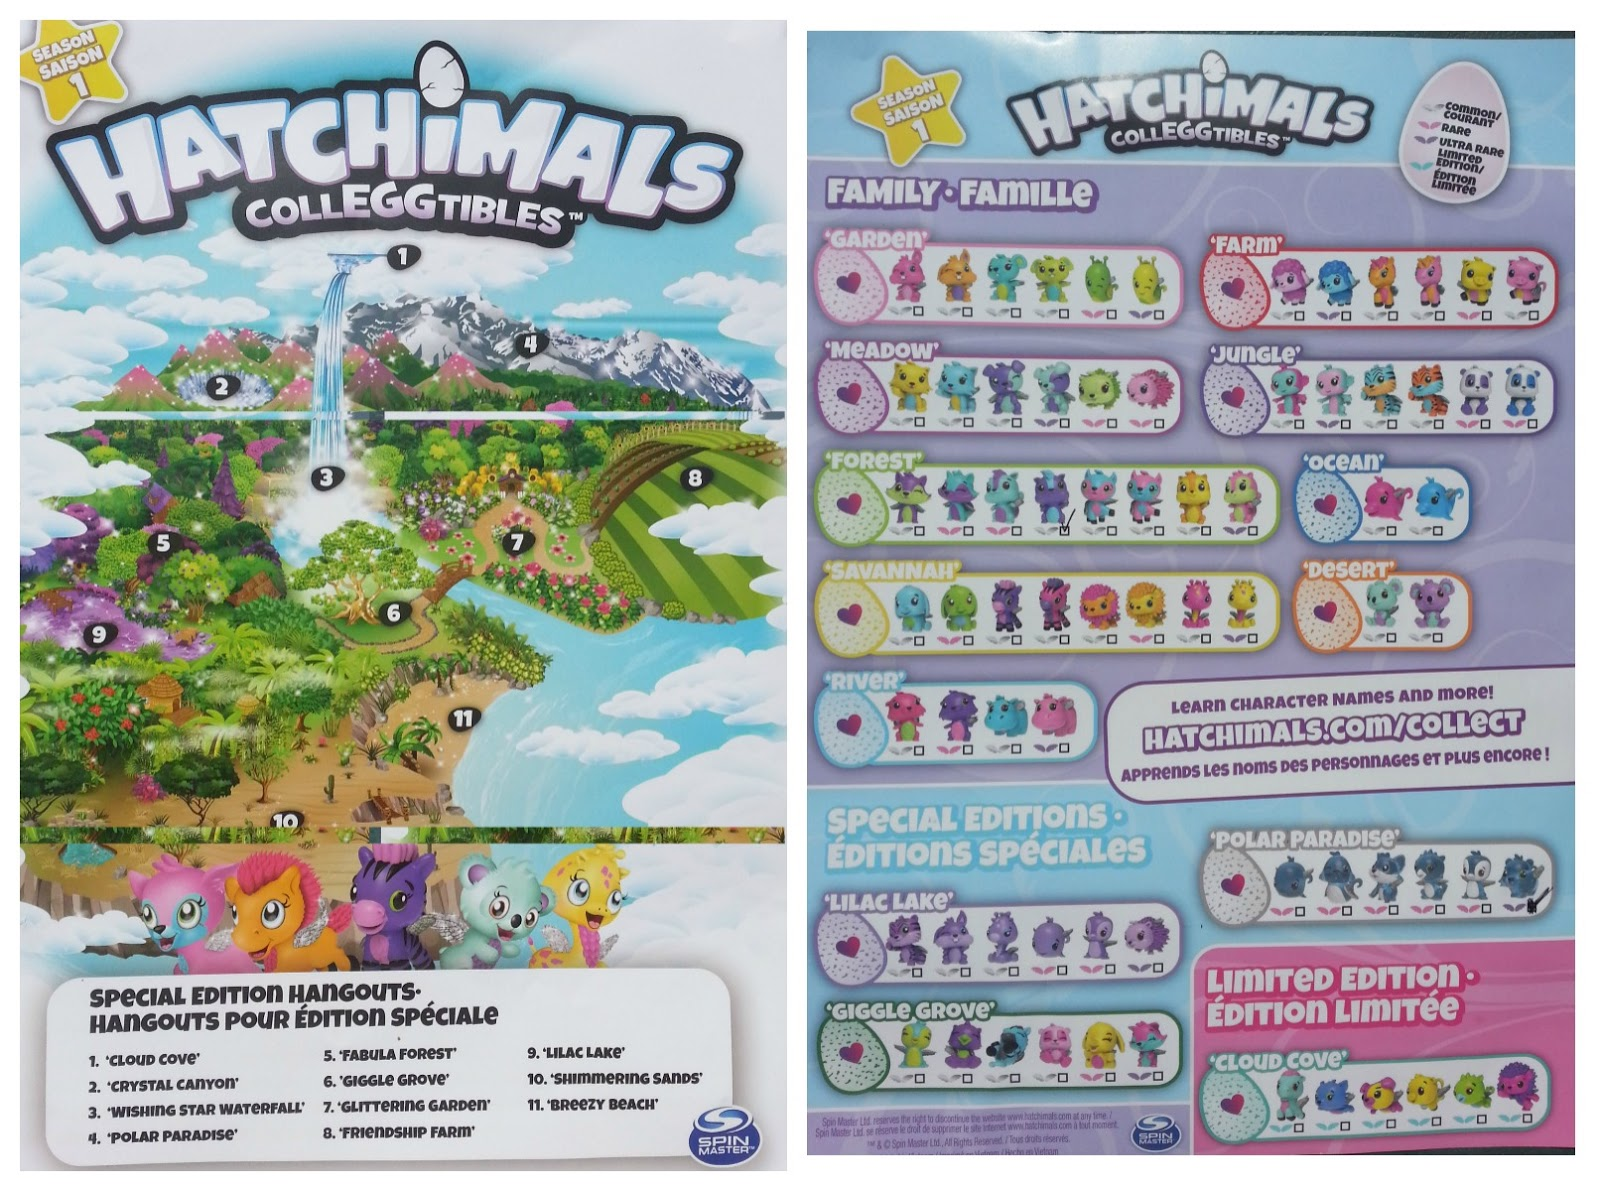 Review Of The New Hatchimals Colleggtibles Range The